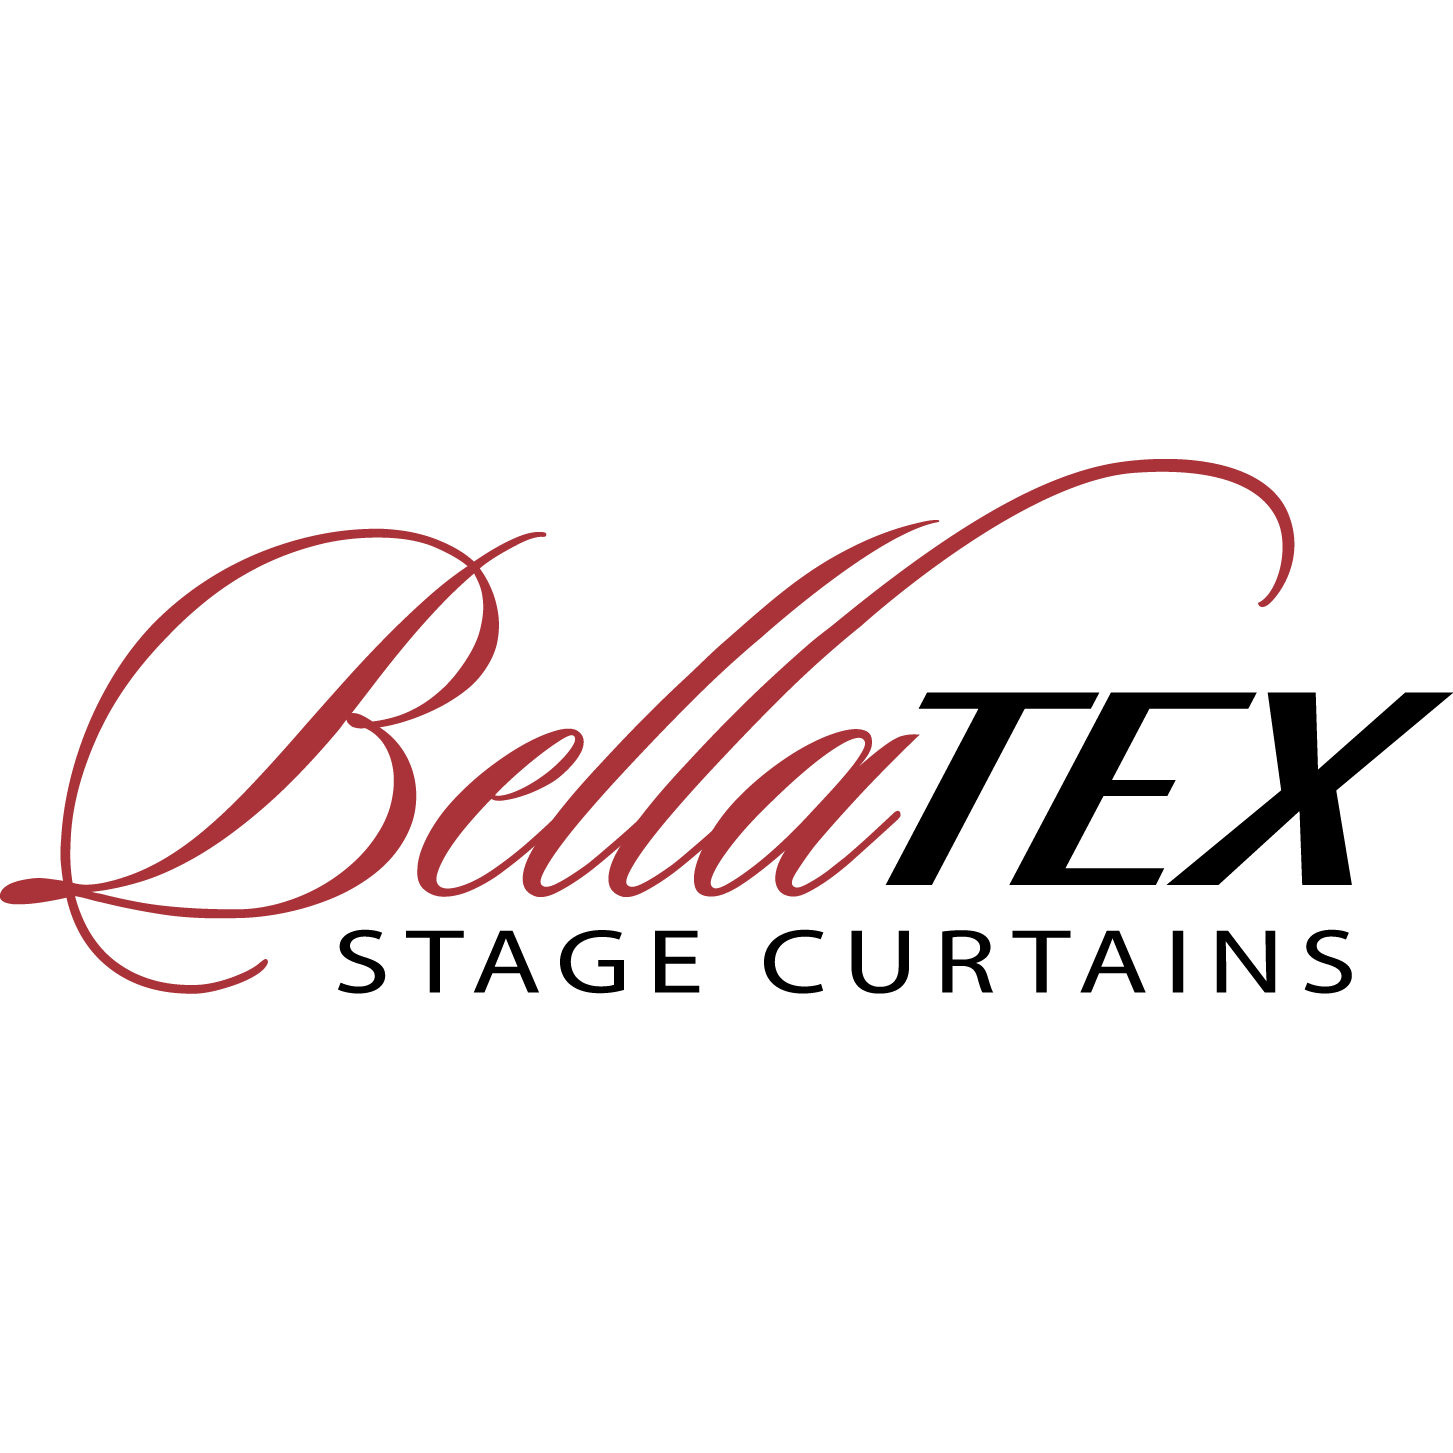 BellaTEX Stage Curtains image 1